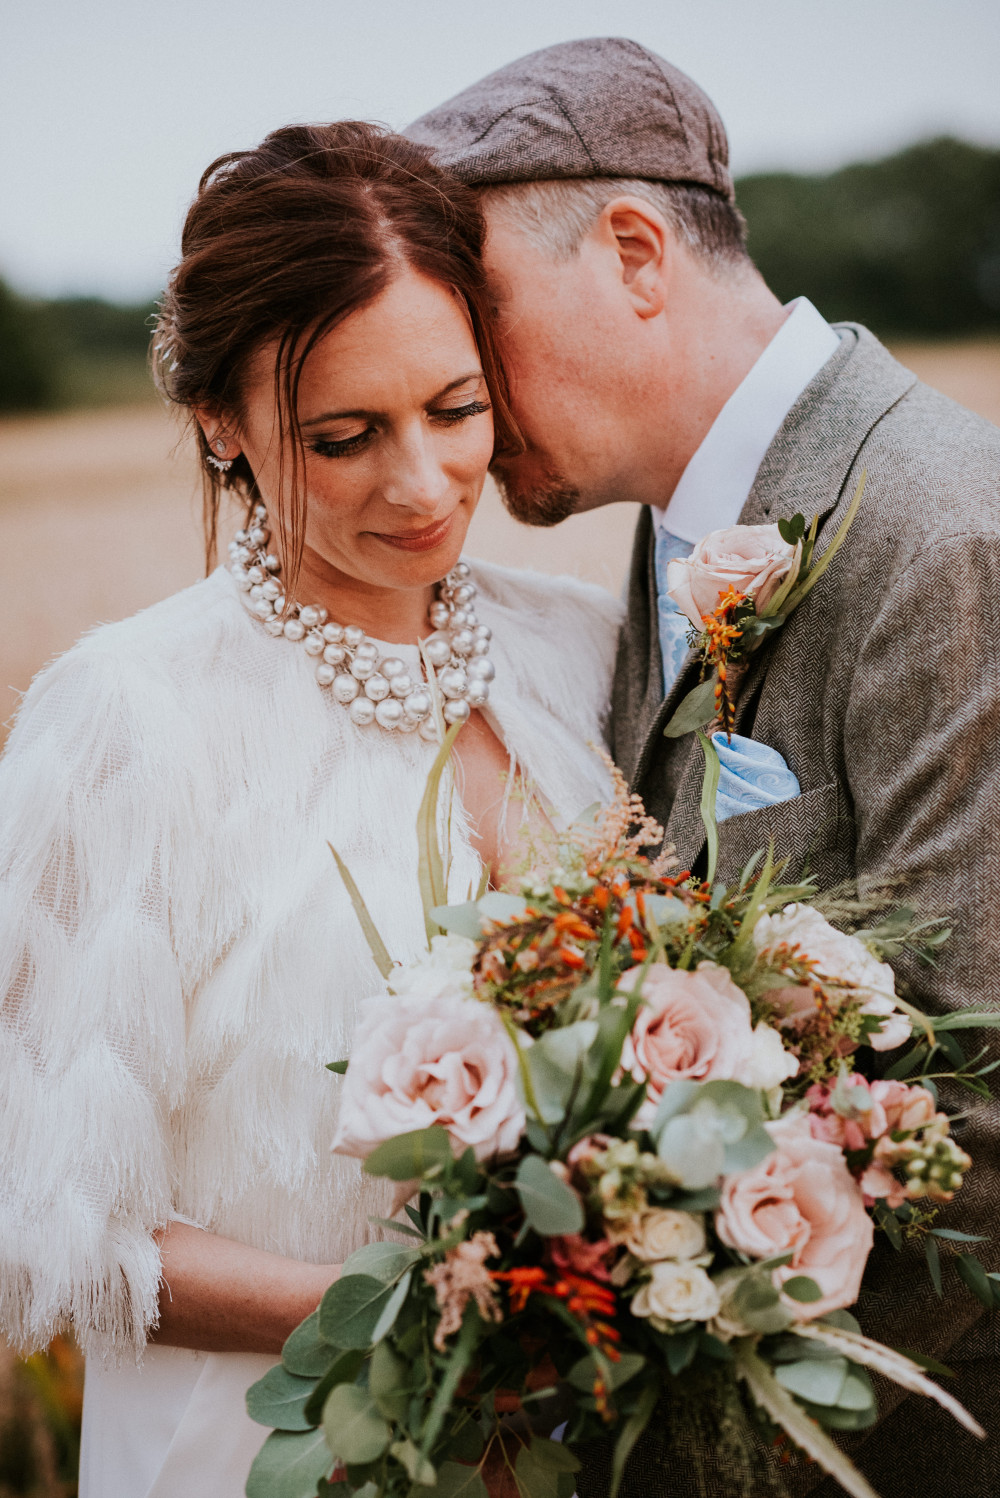 Modern, Bohemian Bride. Fresh skin, with a soft smokey eyes. - Make Me Bridal Artist: Story Hair and Makeup. Photography by: Ginger snaps Photography. #bohemian #glamorous #bridalmakeup #modernbride